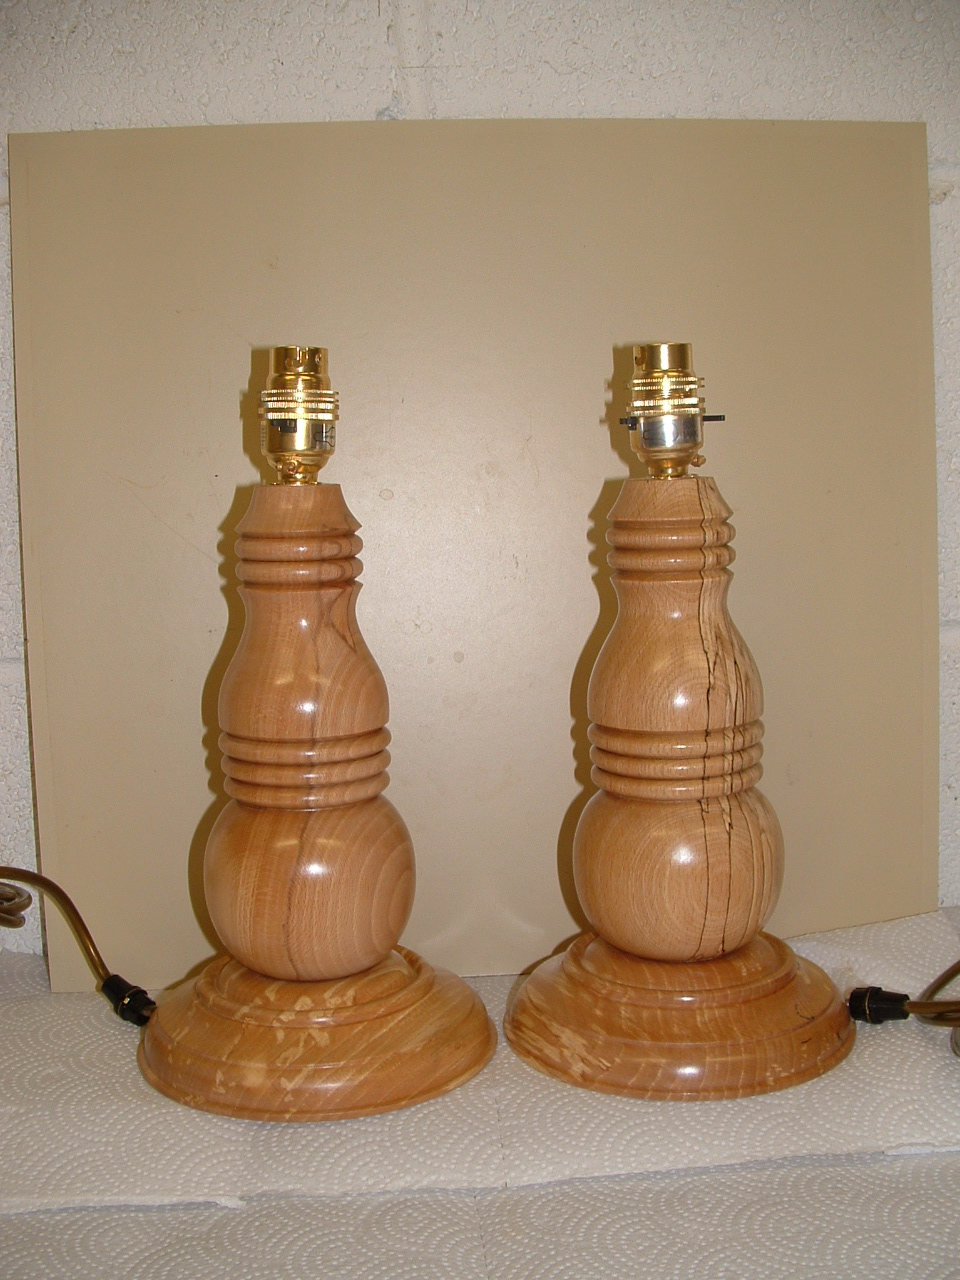 woodturning projects 007